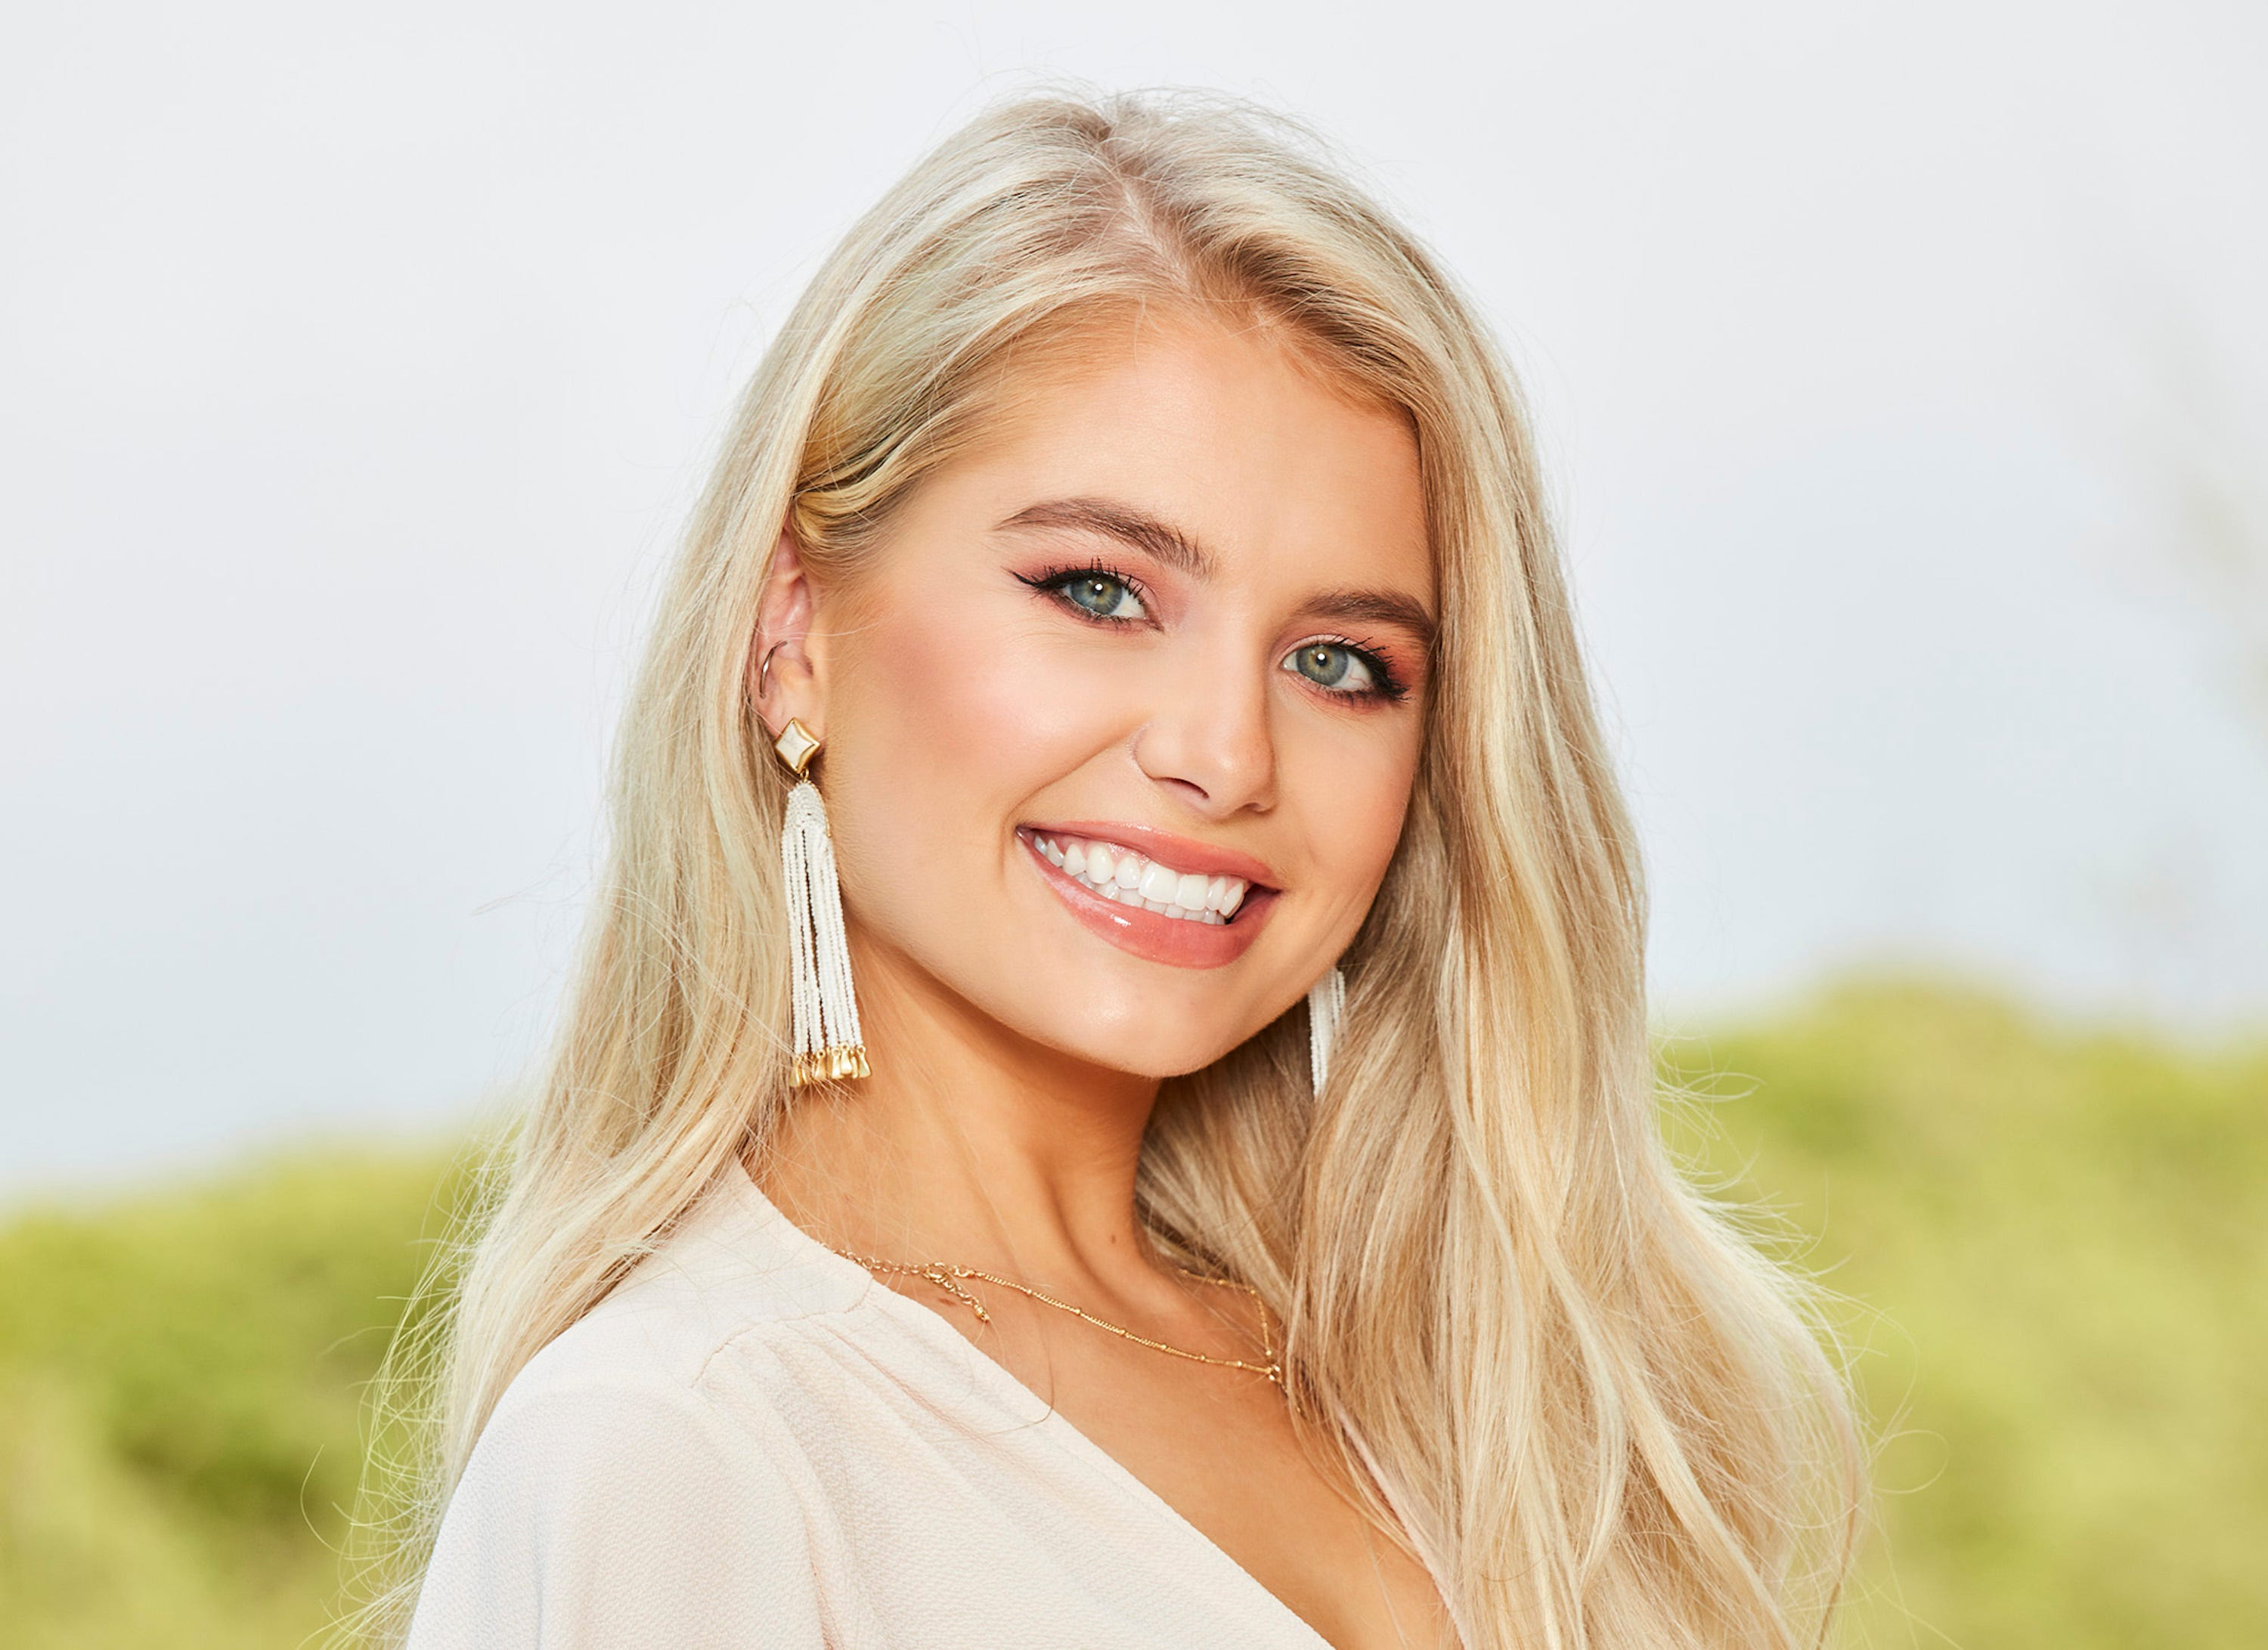 The Bachelor In Paradise 2019 Trailer Is Here: It's Got Demi's Love Triangle, New Cast & So Much More